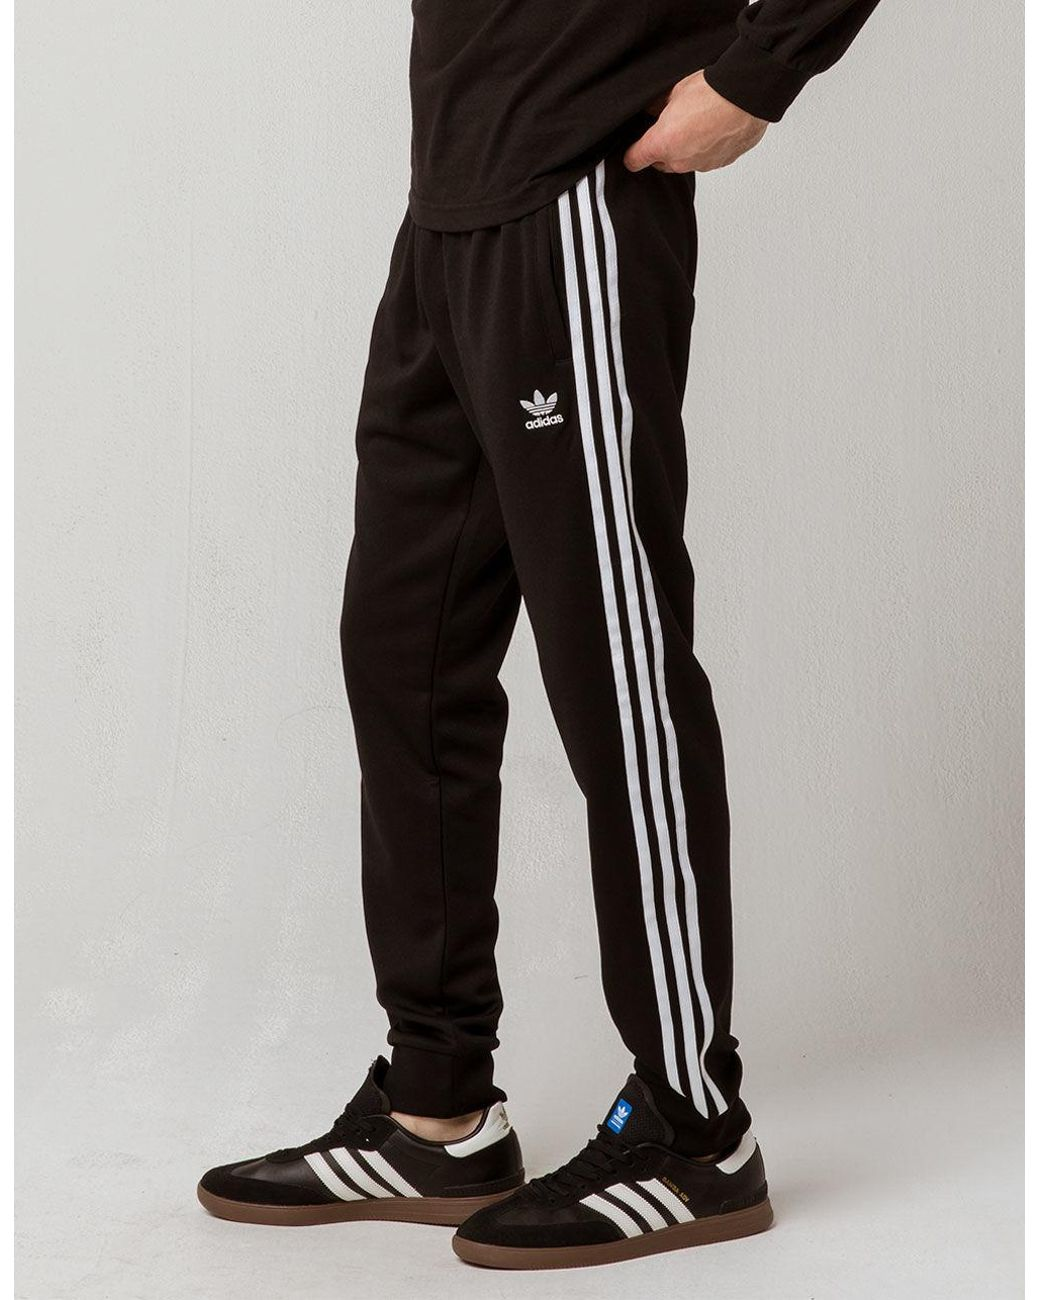 b3dbc40979f0 Lyst - adidas Originals Side Stripe Mens Track Pants in Black for Men